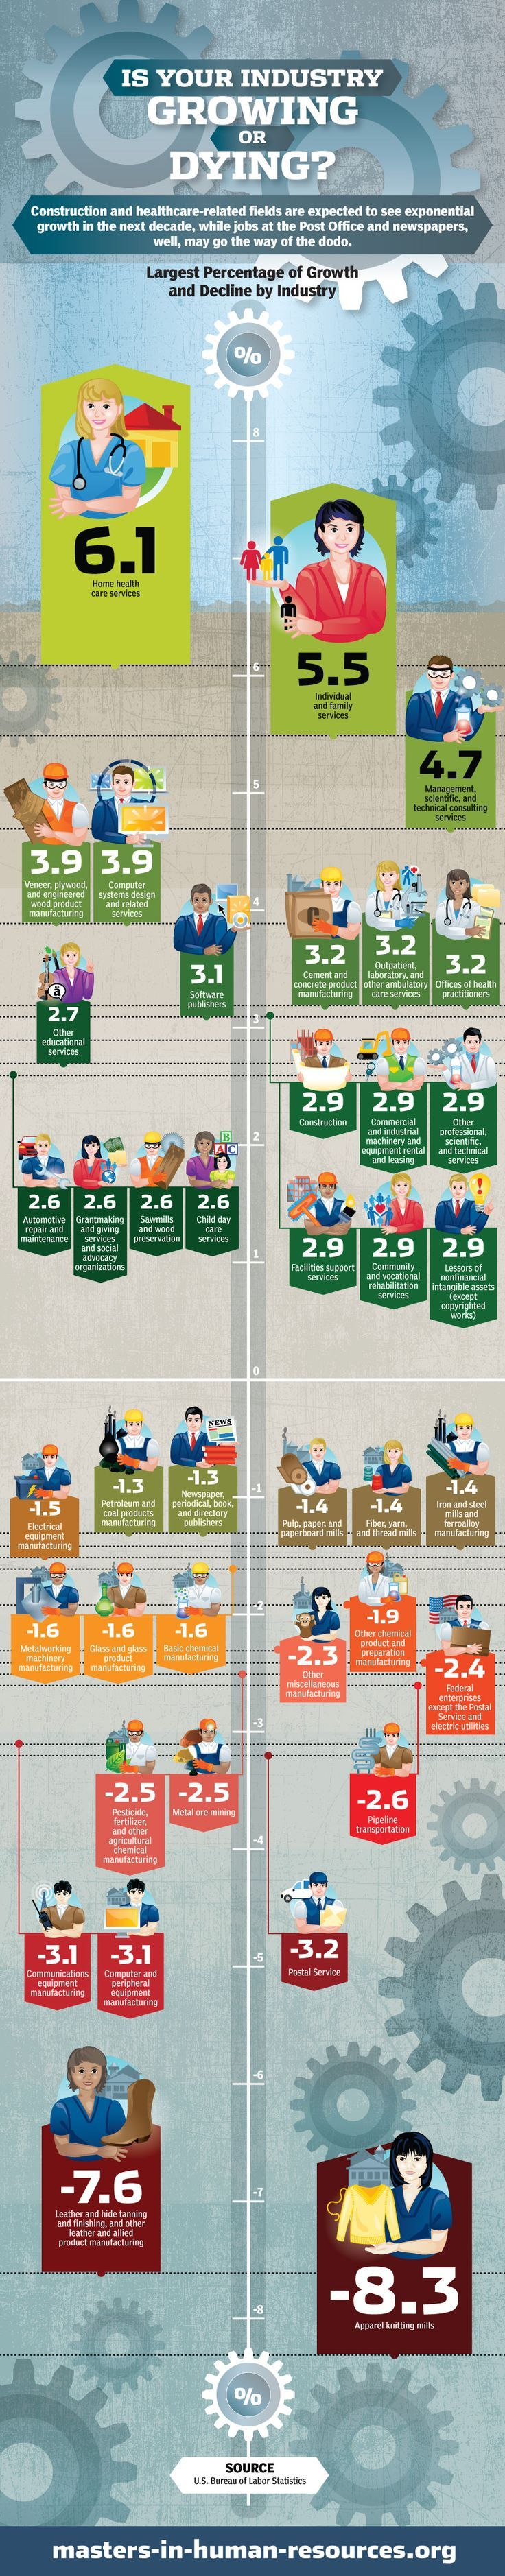 Is Your Industry Growing or Dying? Top 20 Fastest Growing Industries